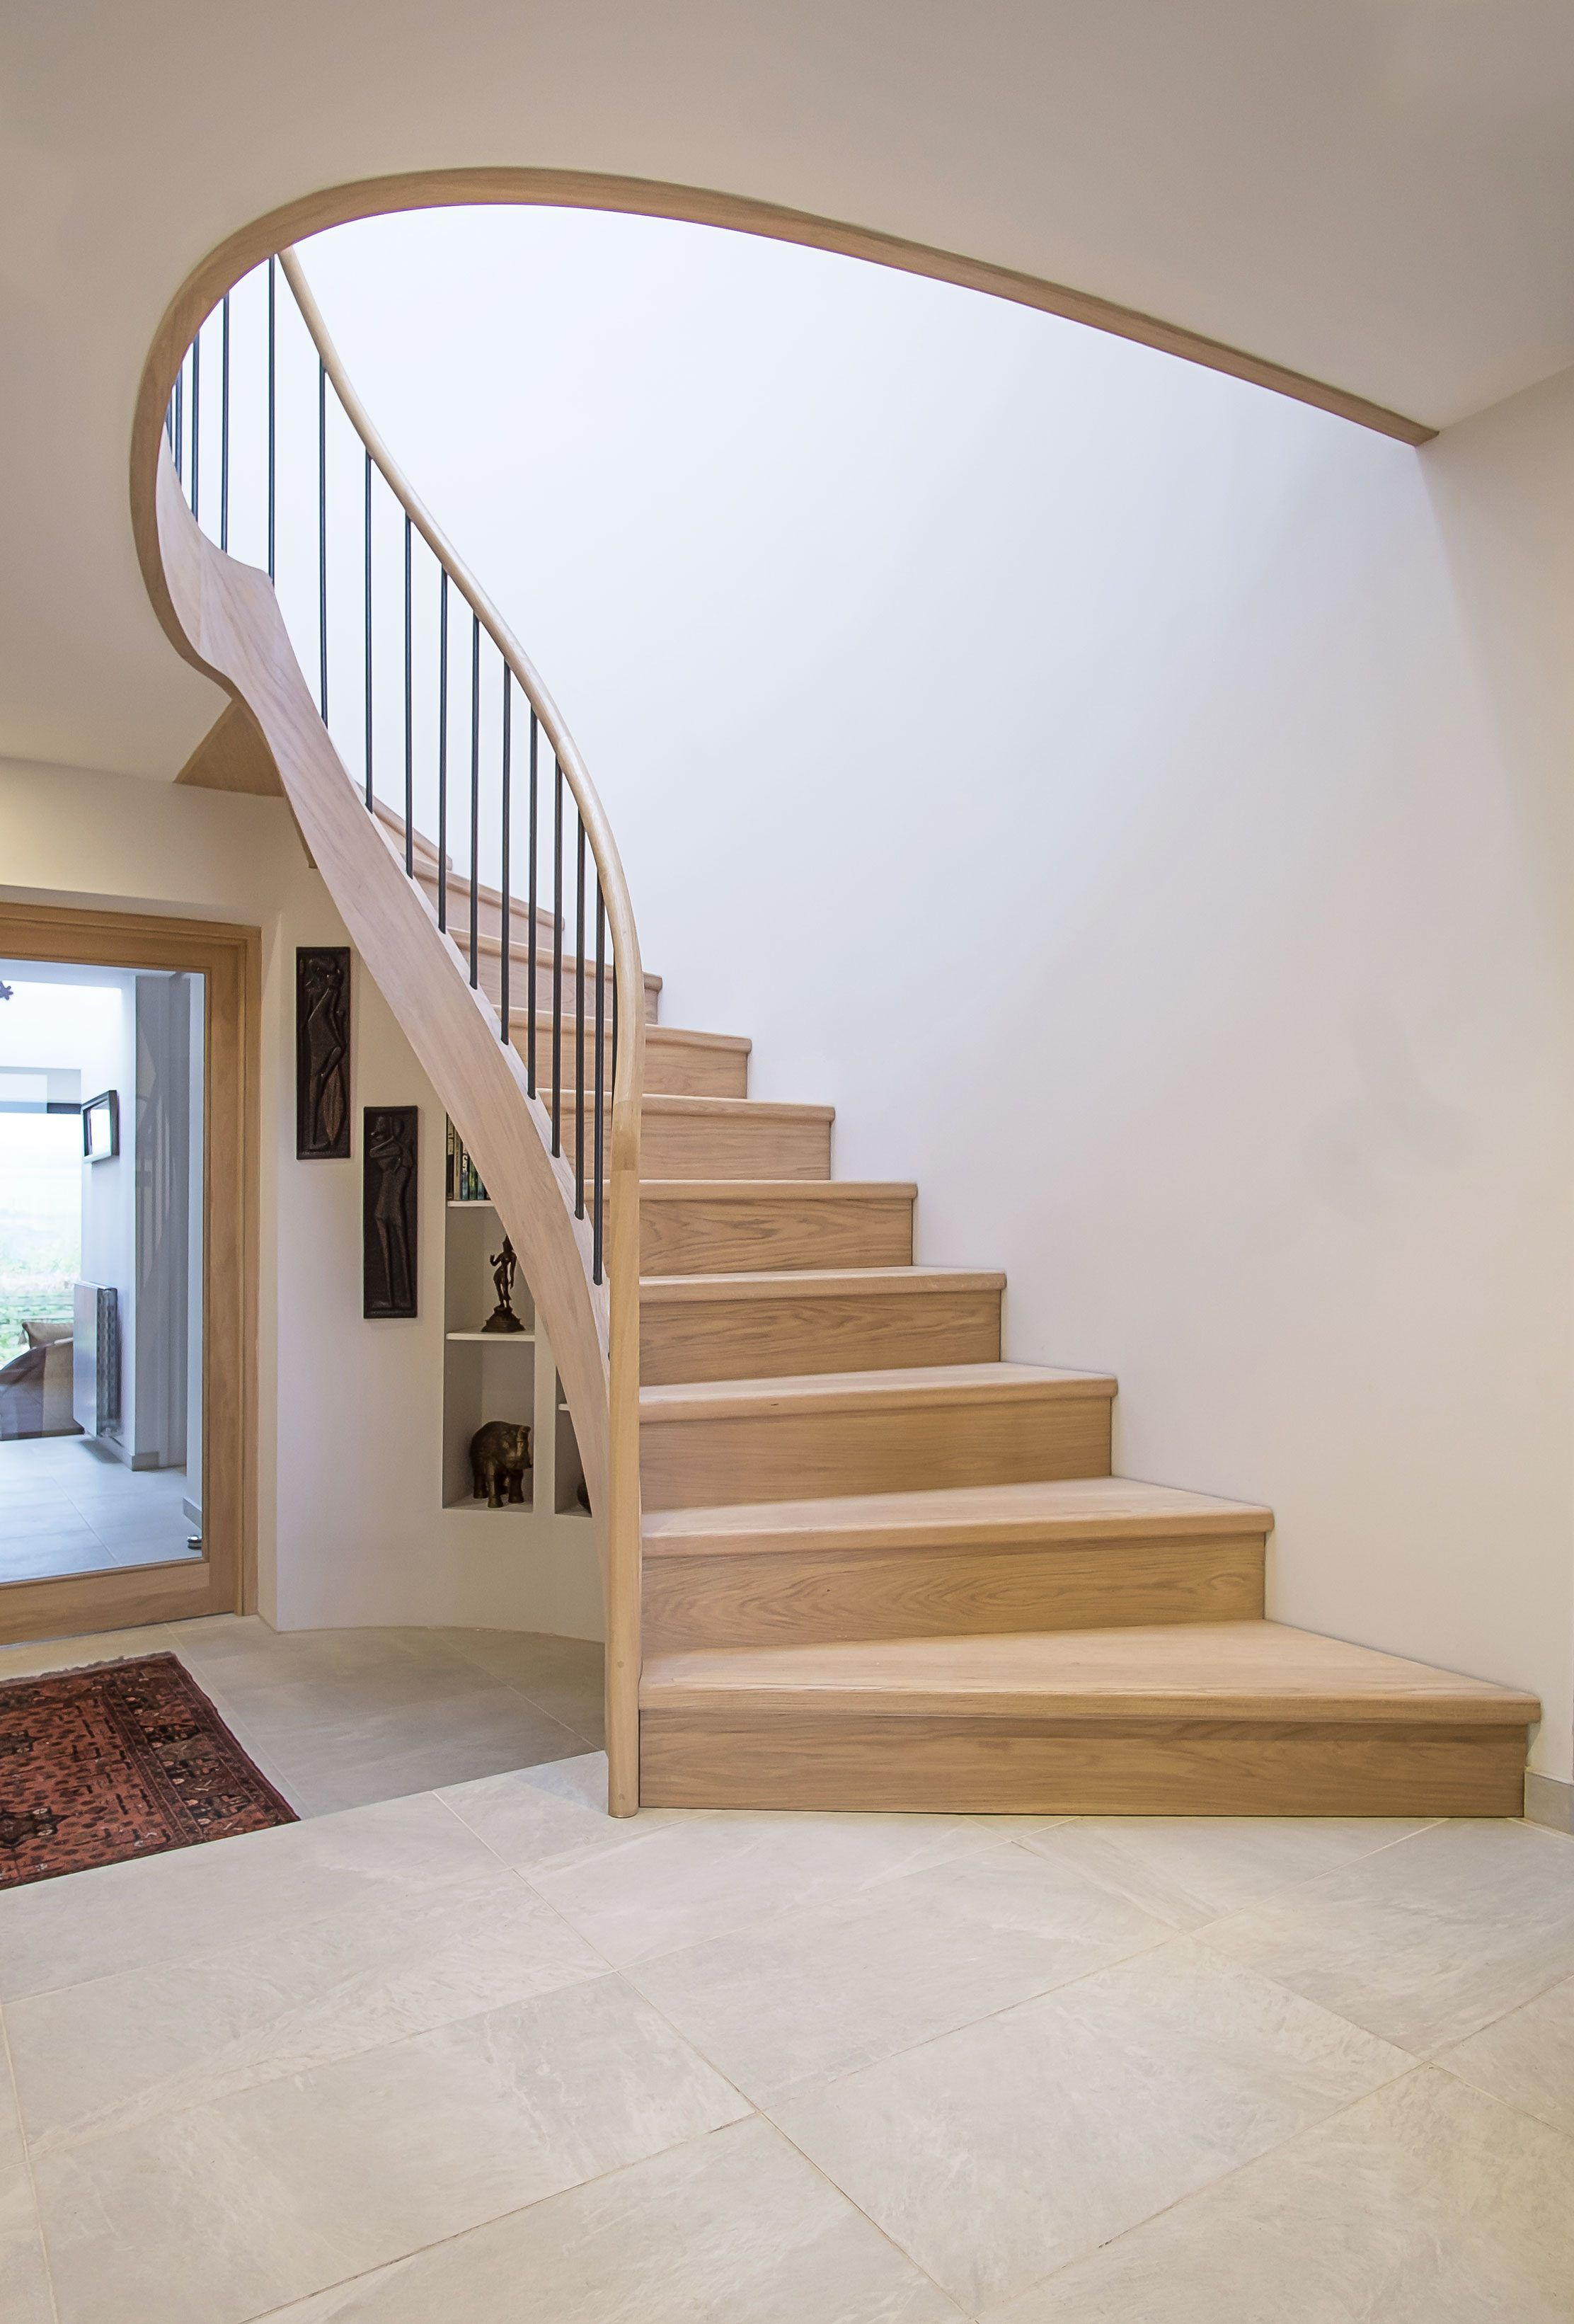 Ground floor view of feature Elliptical oak stair with iron balustrade and oak handrail. Tiled floors, rug, glazed oak doors and storage..